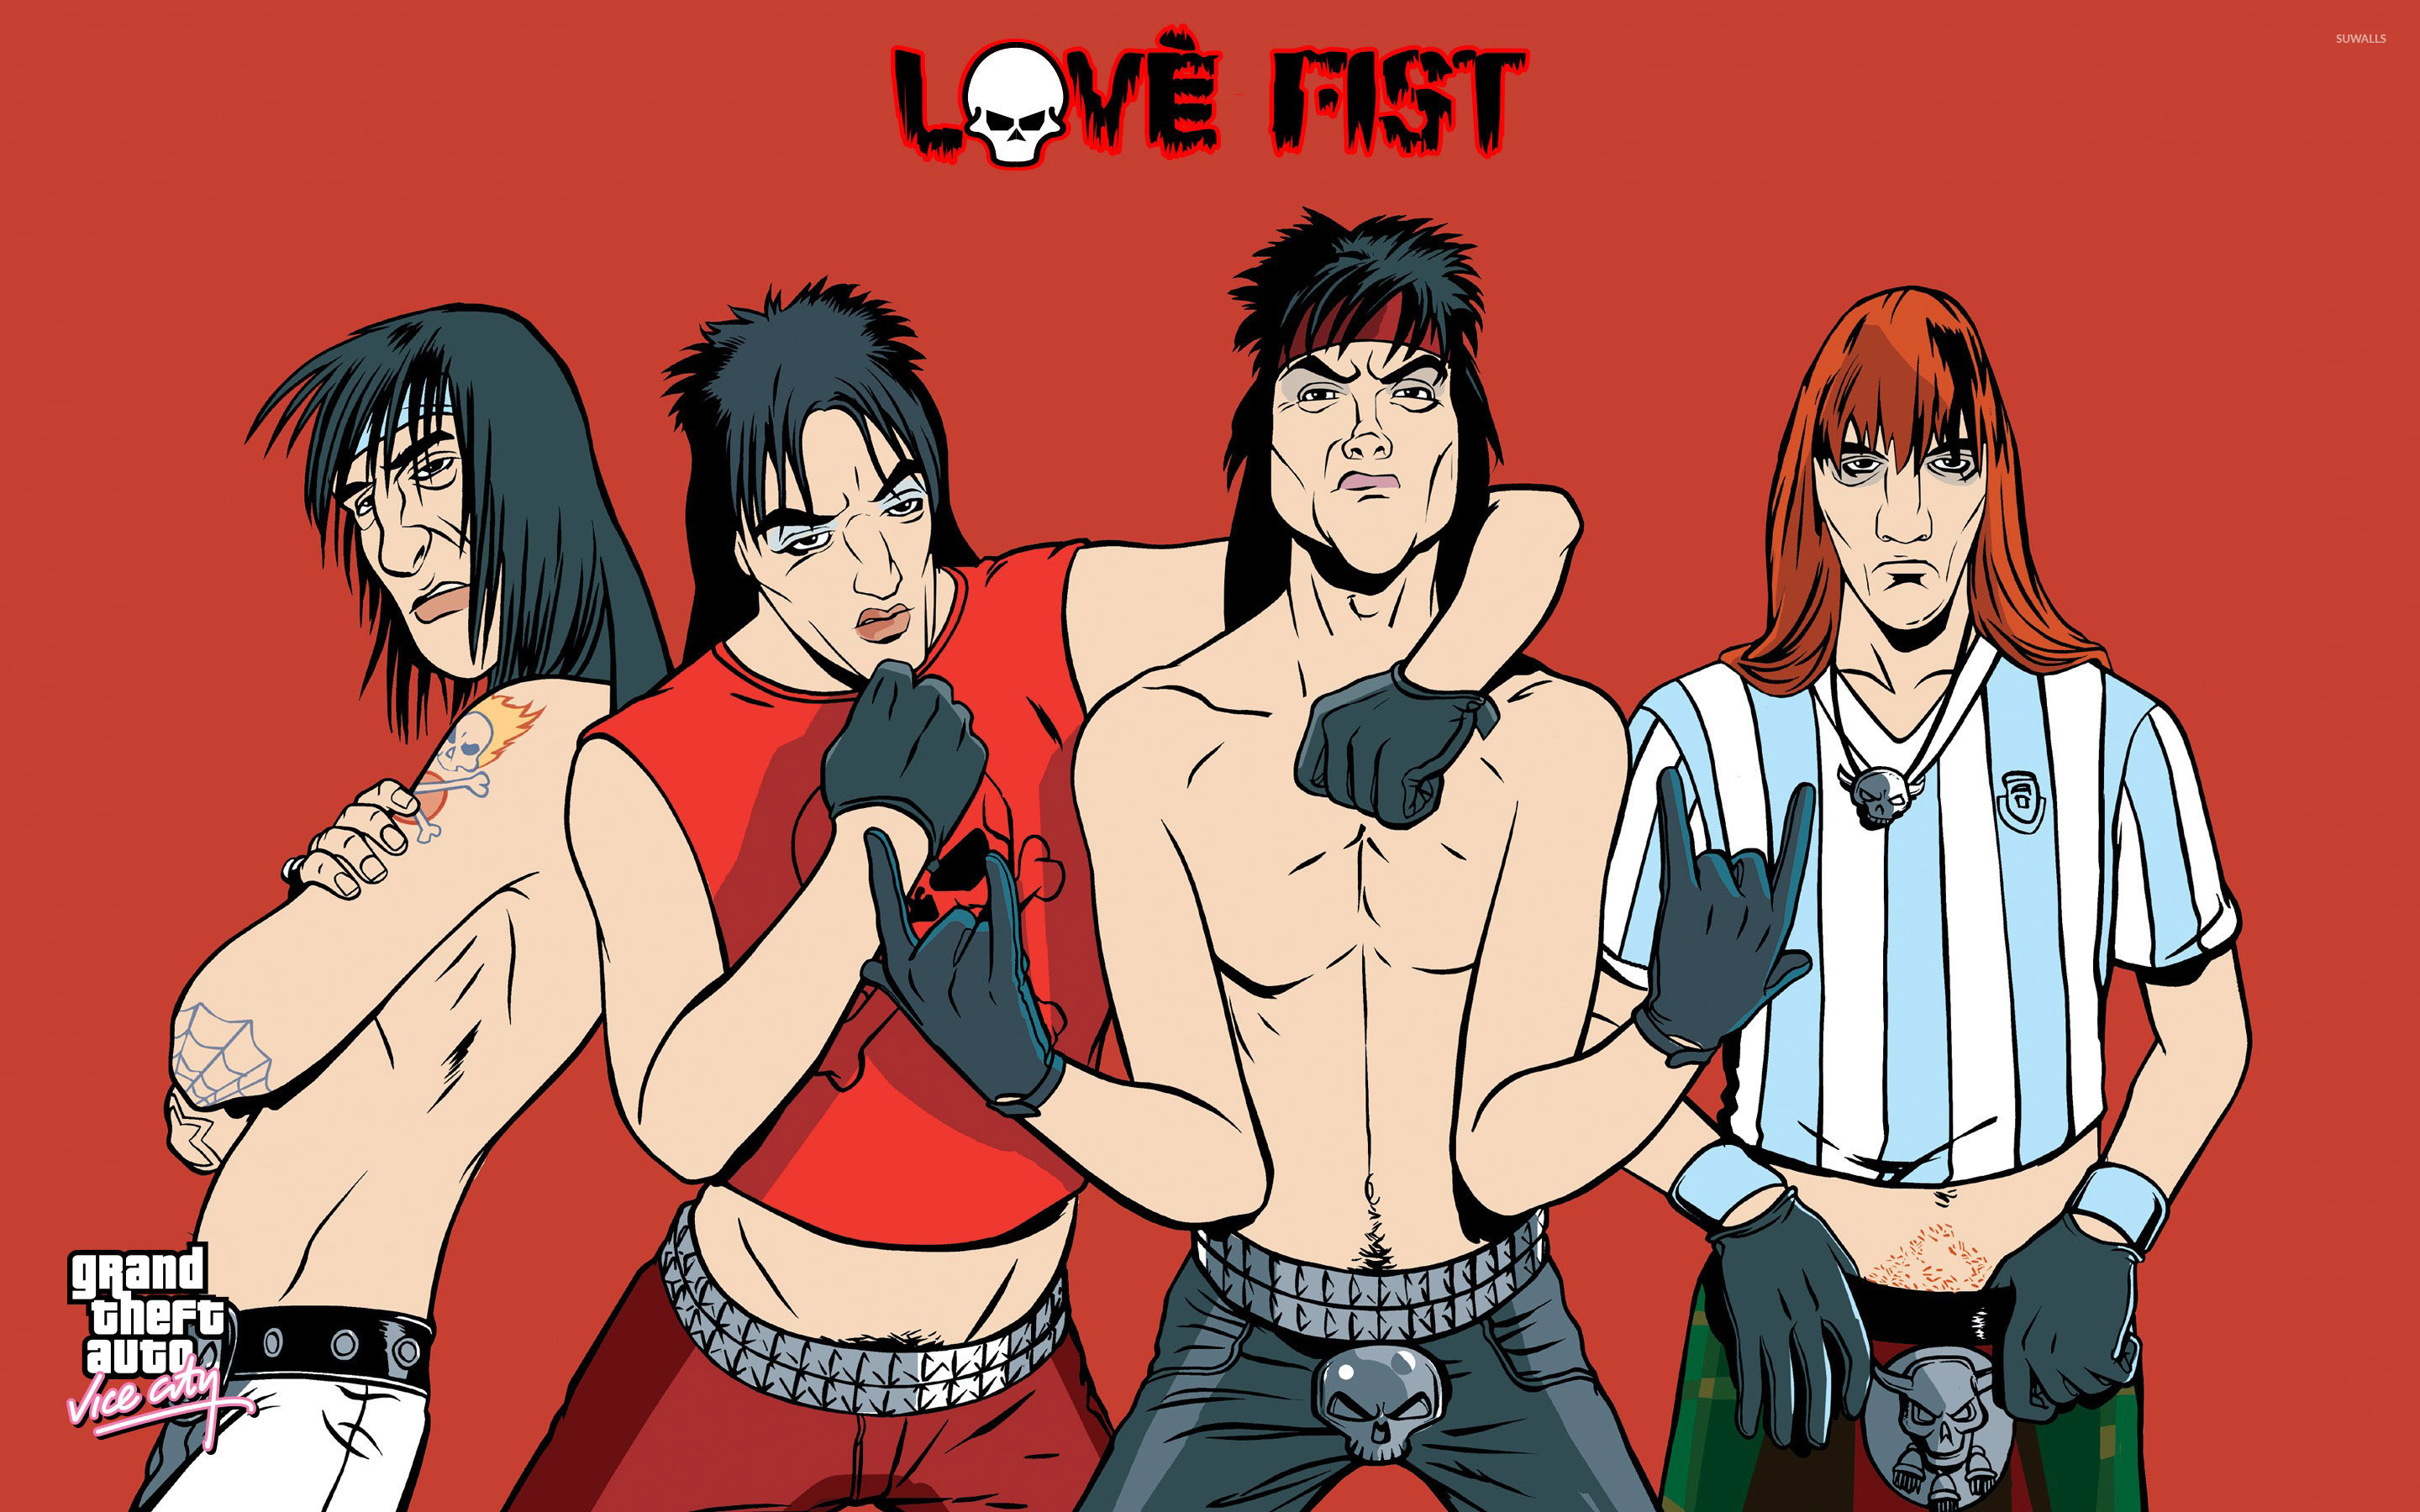 2880x1800 Love Fist heavy metal band wallpaper  jpg